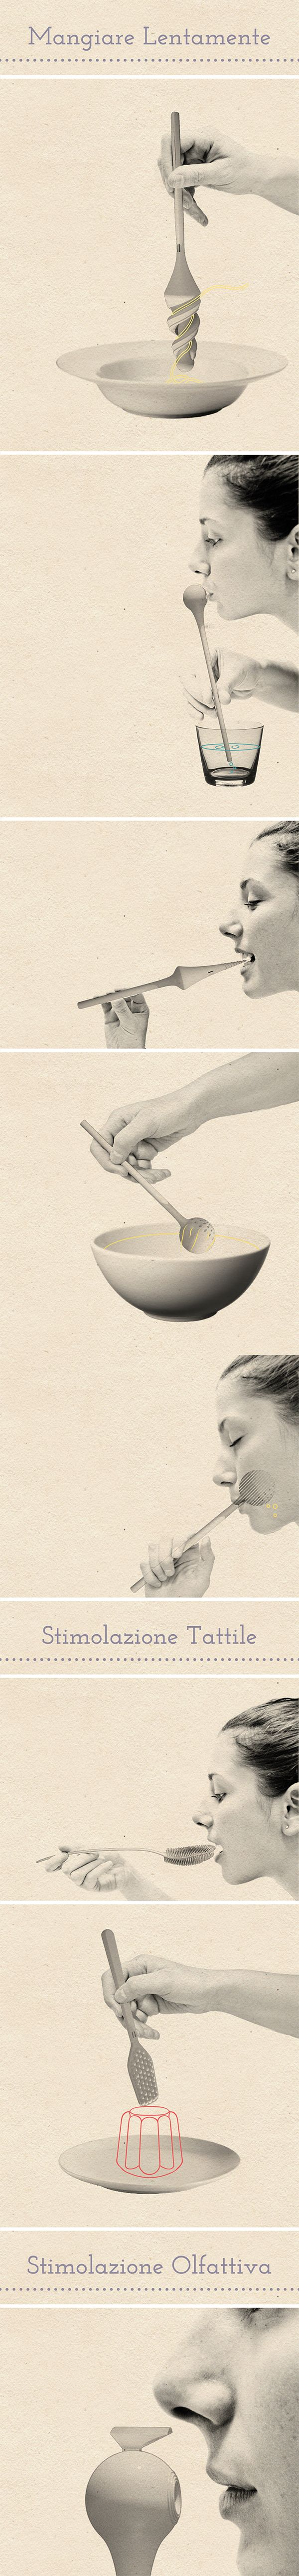 Tuls. For food experience. by Marianna Milione, via Behance